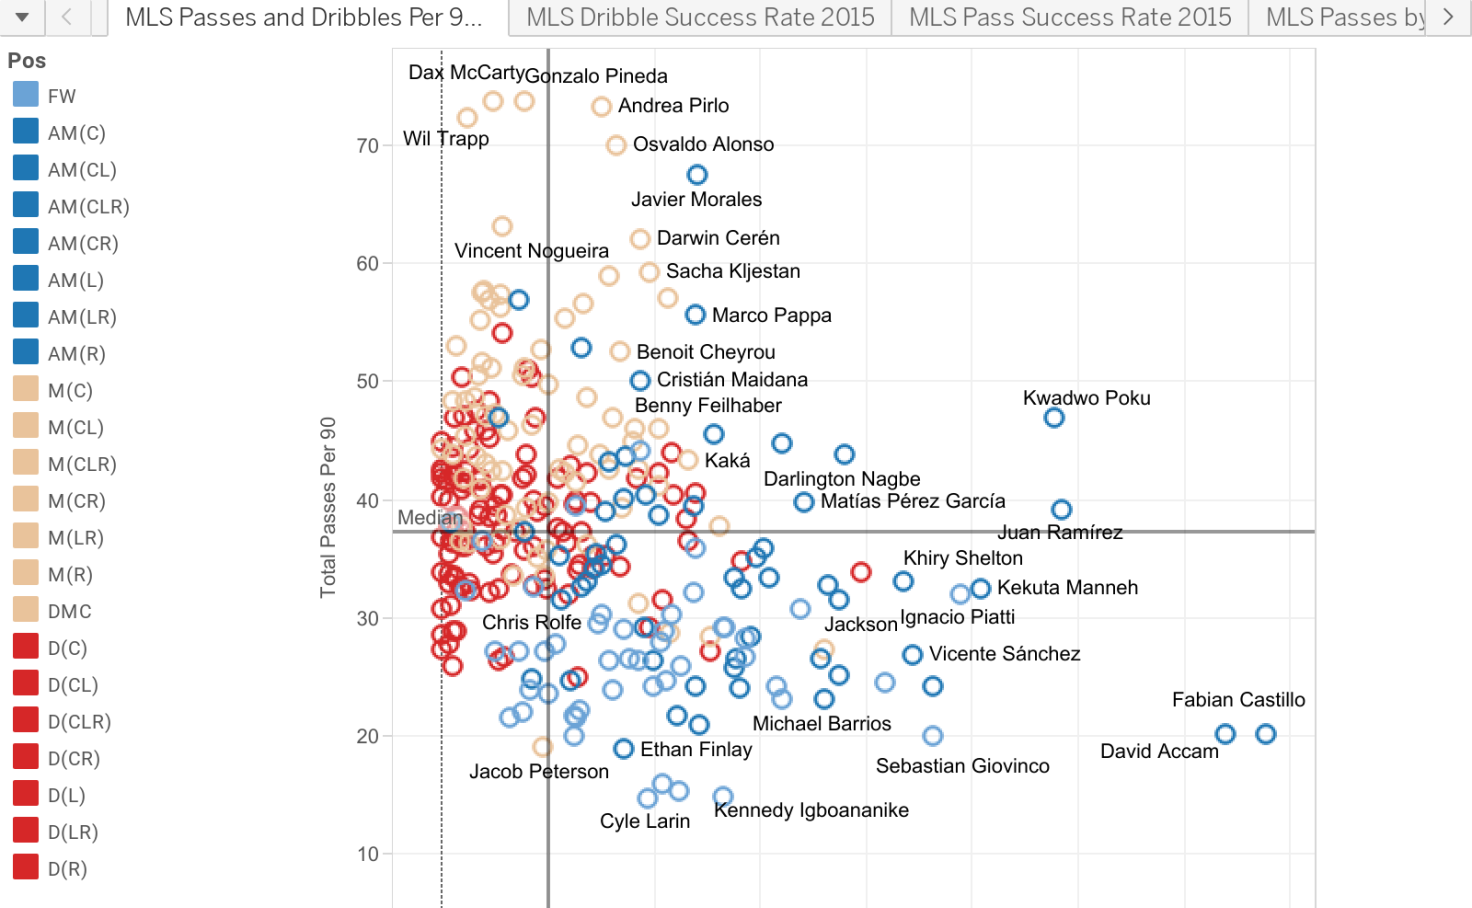 Mls Passing And Dribbling Stats 2015 Charles Wilson Tableau Public